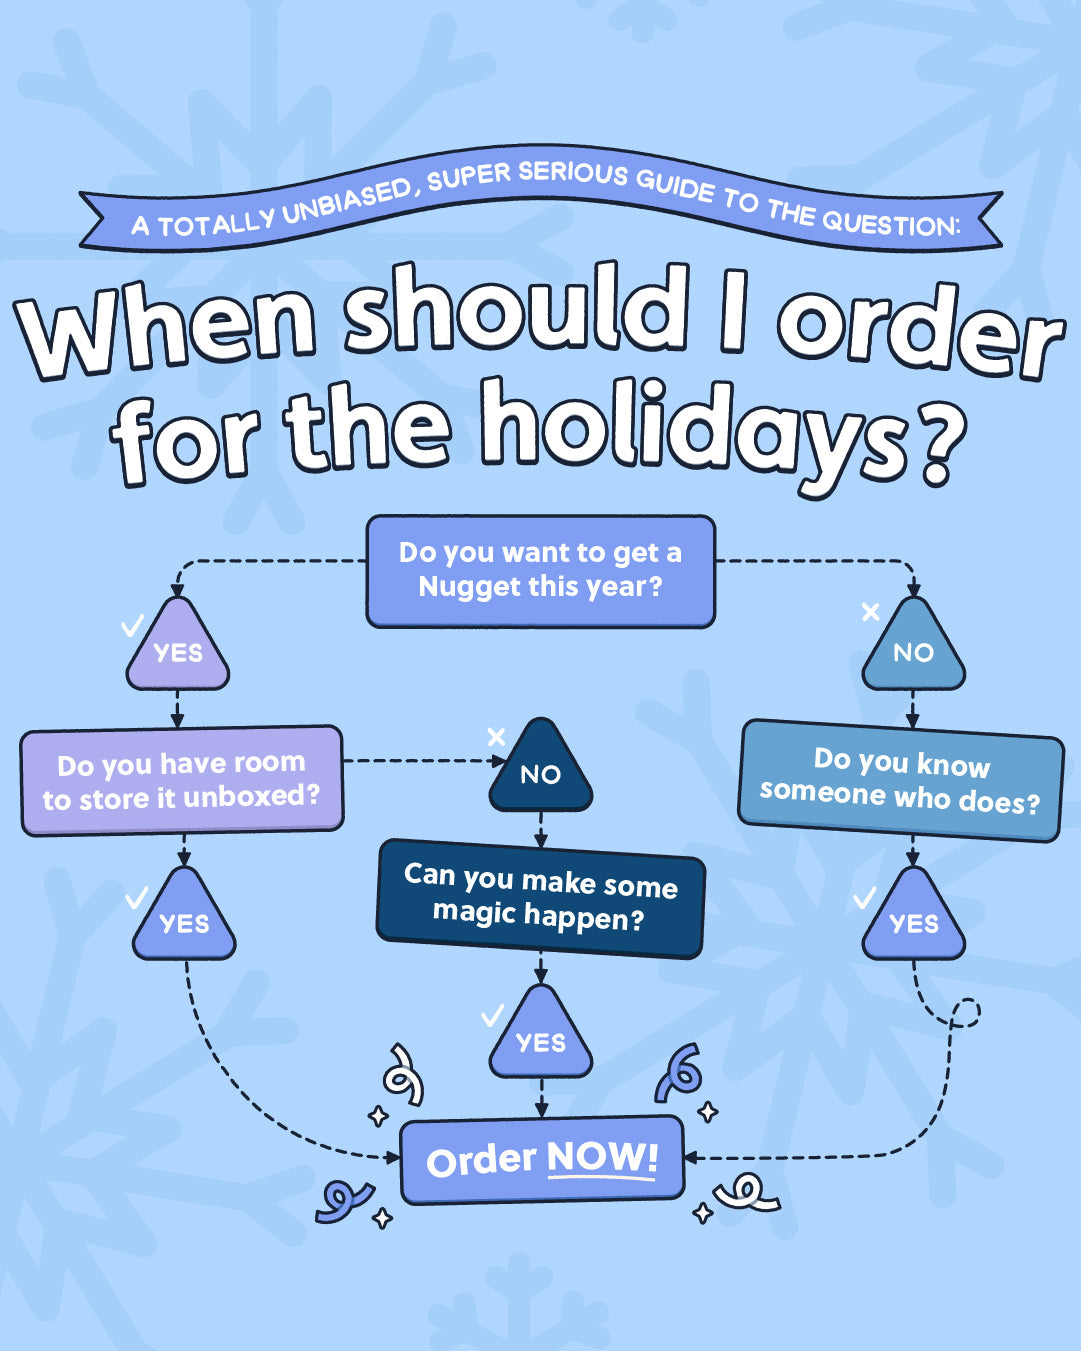 """A totally unbiased, super serious guide to the question: When should I order for the holidays? Do you want a Nugget this year, or know someone who does? All answers point to """"Order now!"""""""